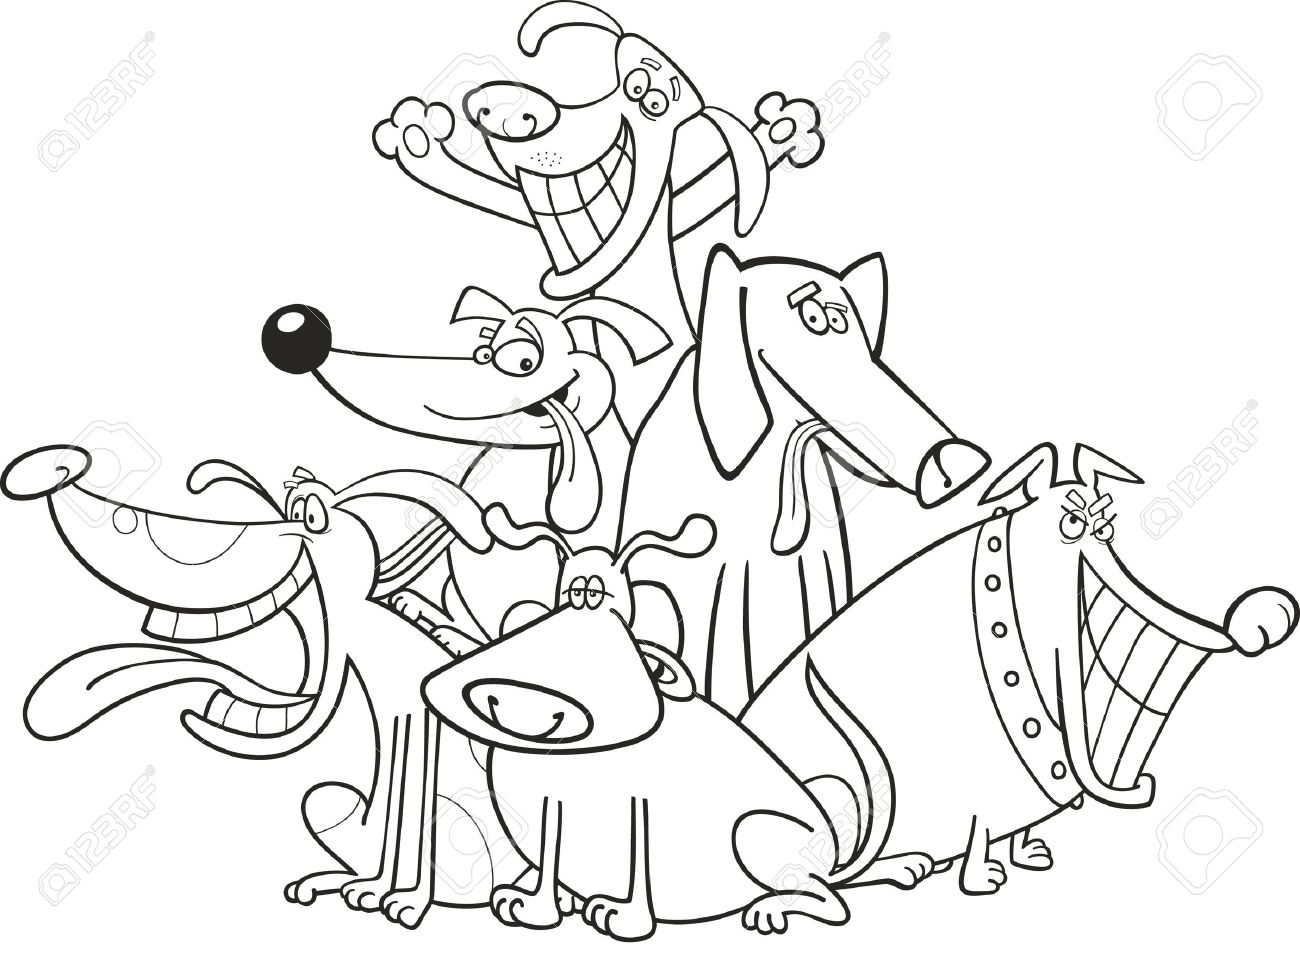 Cartoon Illustration Of Funny Dogs Group For Coloring Book Stock Vector